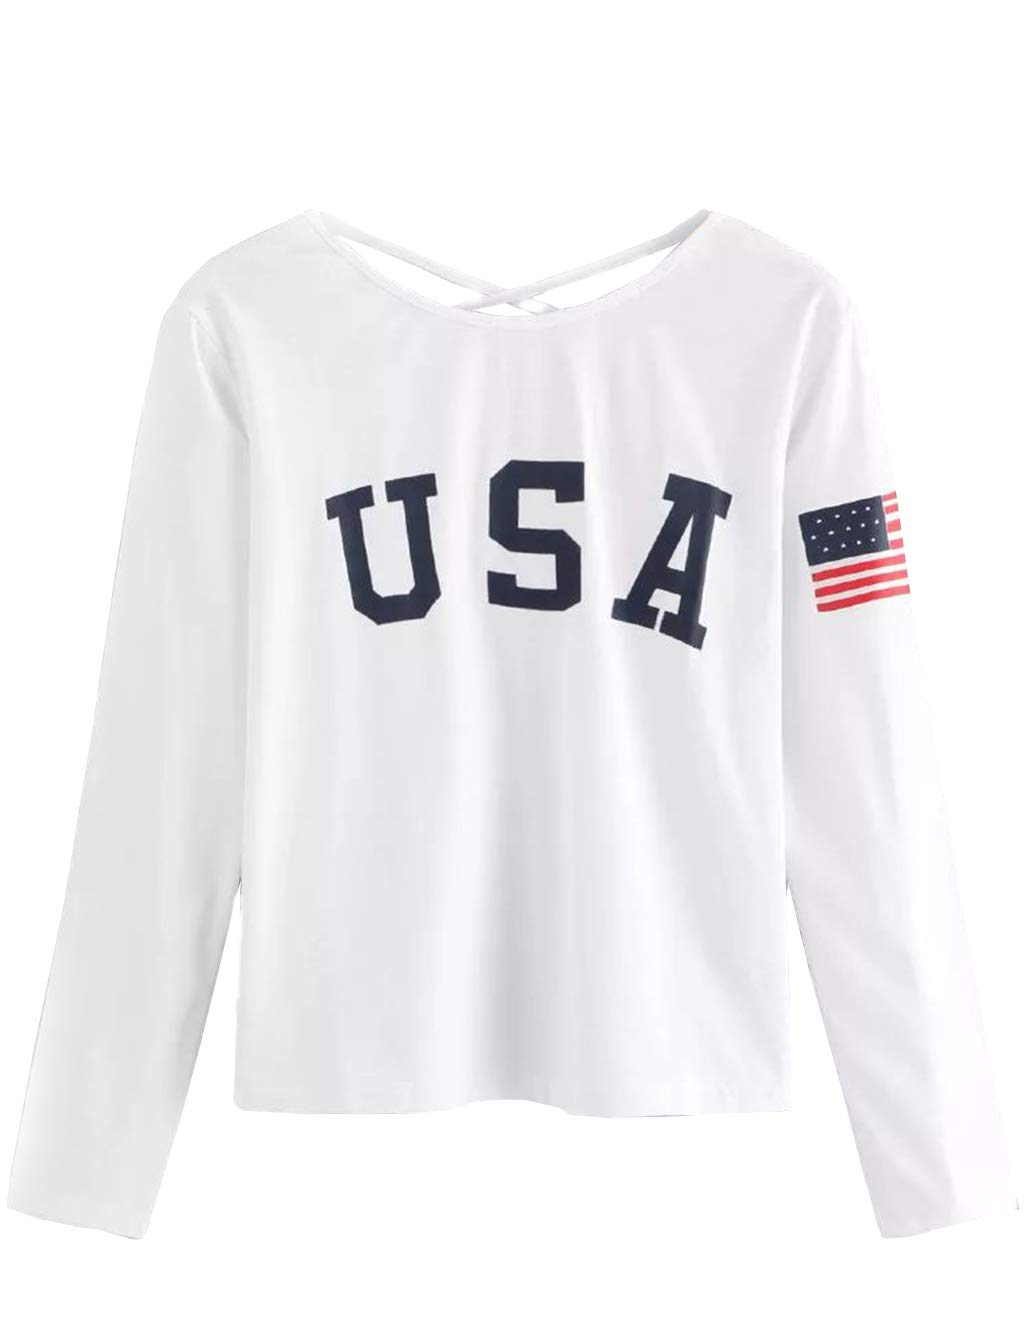 SZT Sweatshirts Teen Girls USA American Flag Jacket Crop Top Letter Print Cropped Hoodie Pullover Jumper Sweater (C-White, M)